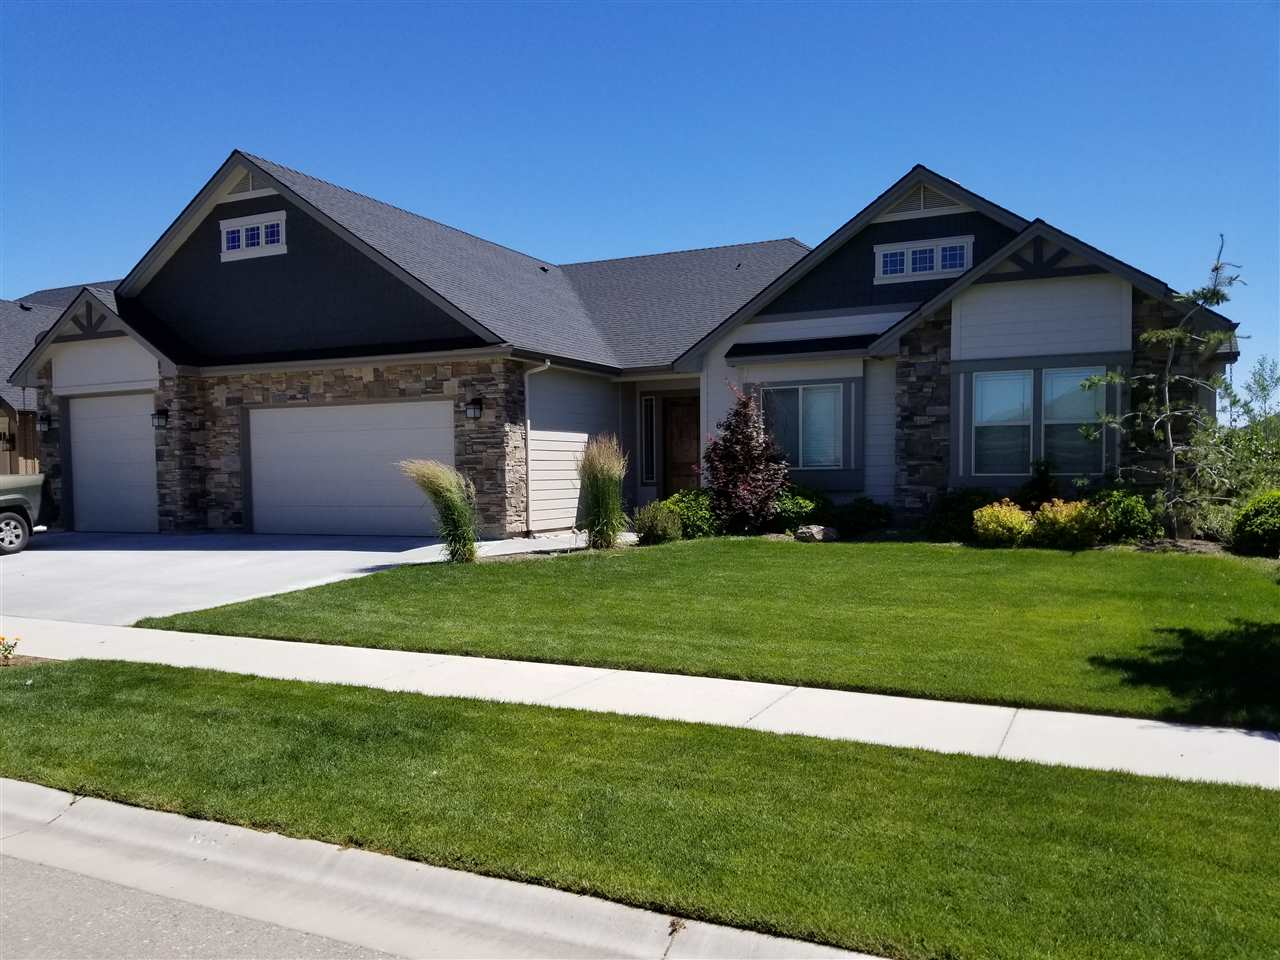 6023 W Founders Dr, Eagle, ID 83616